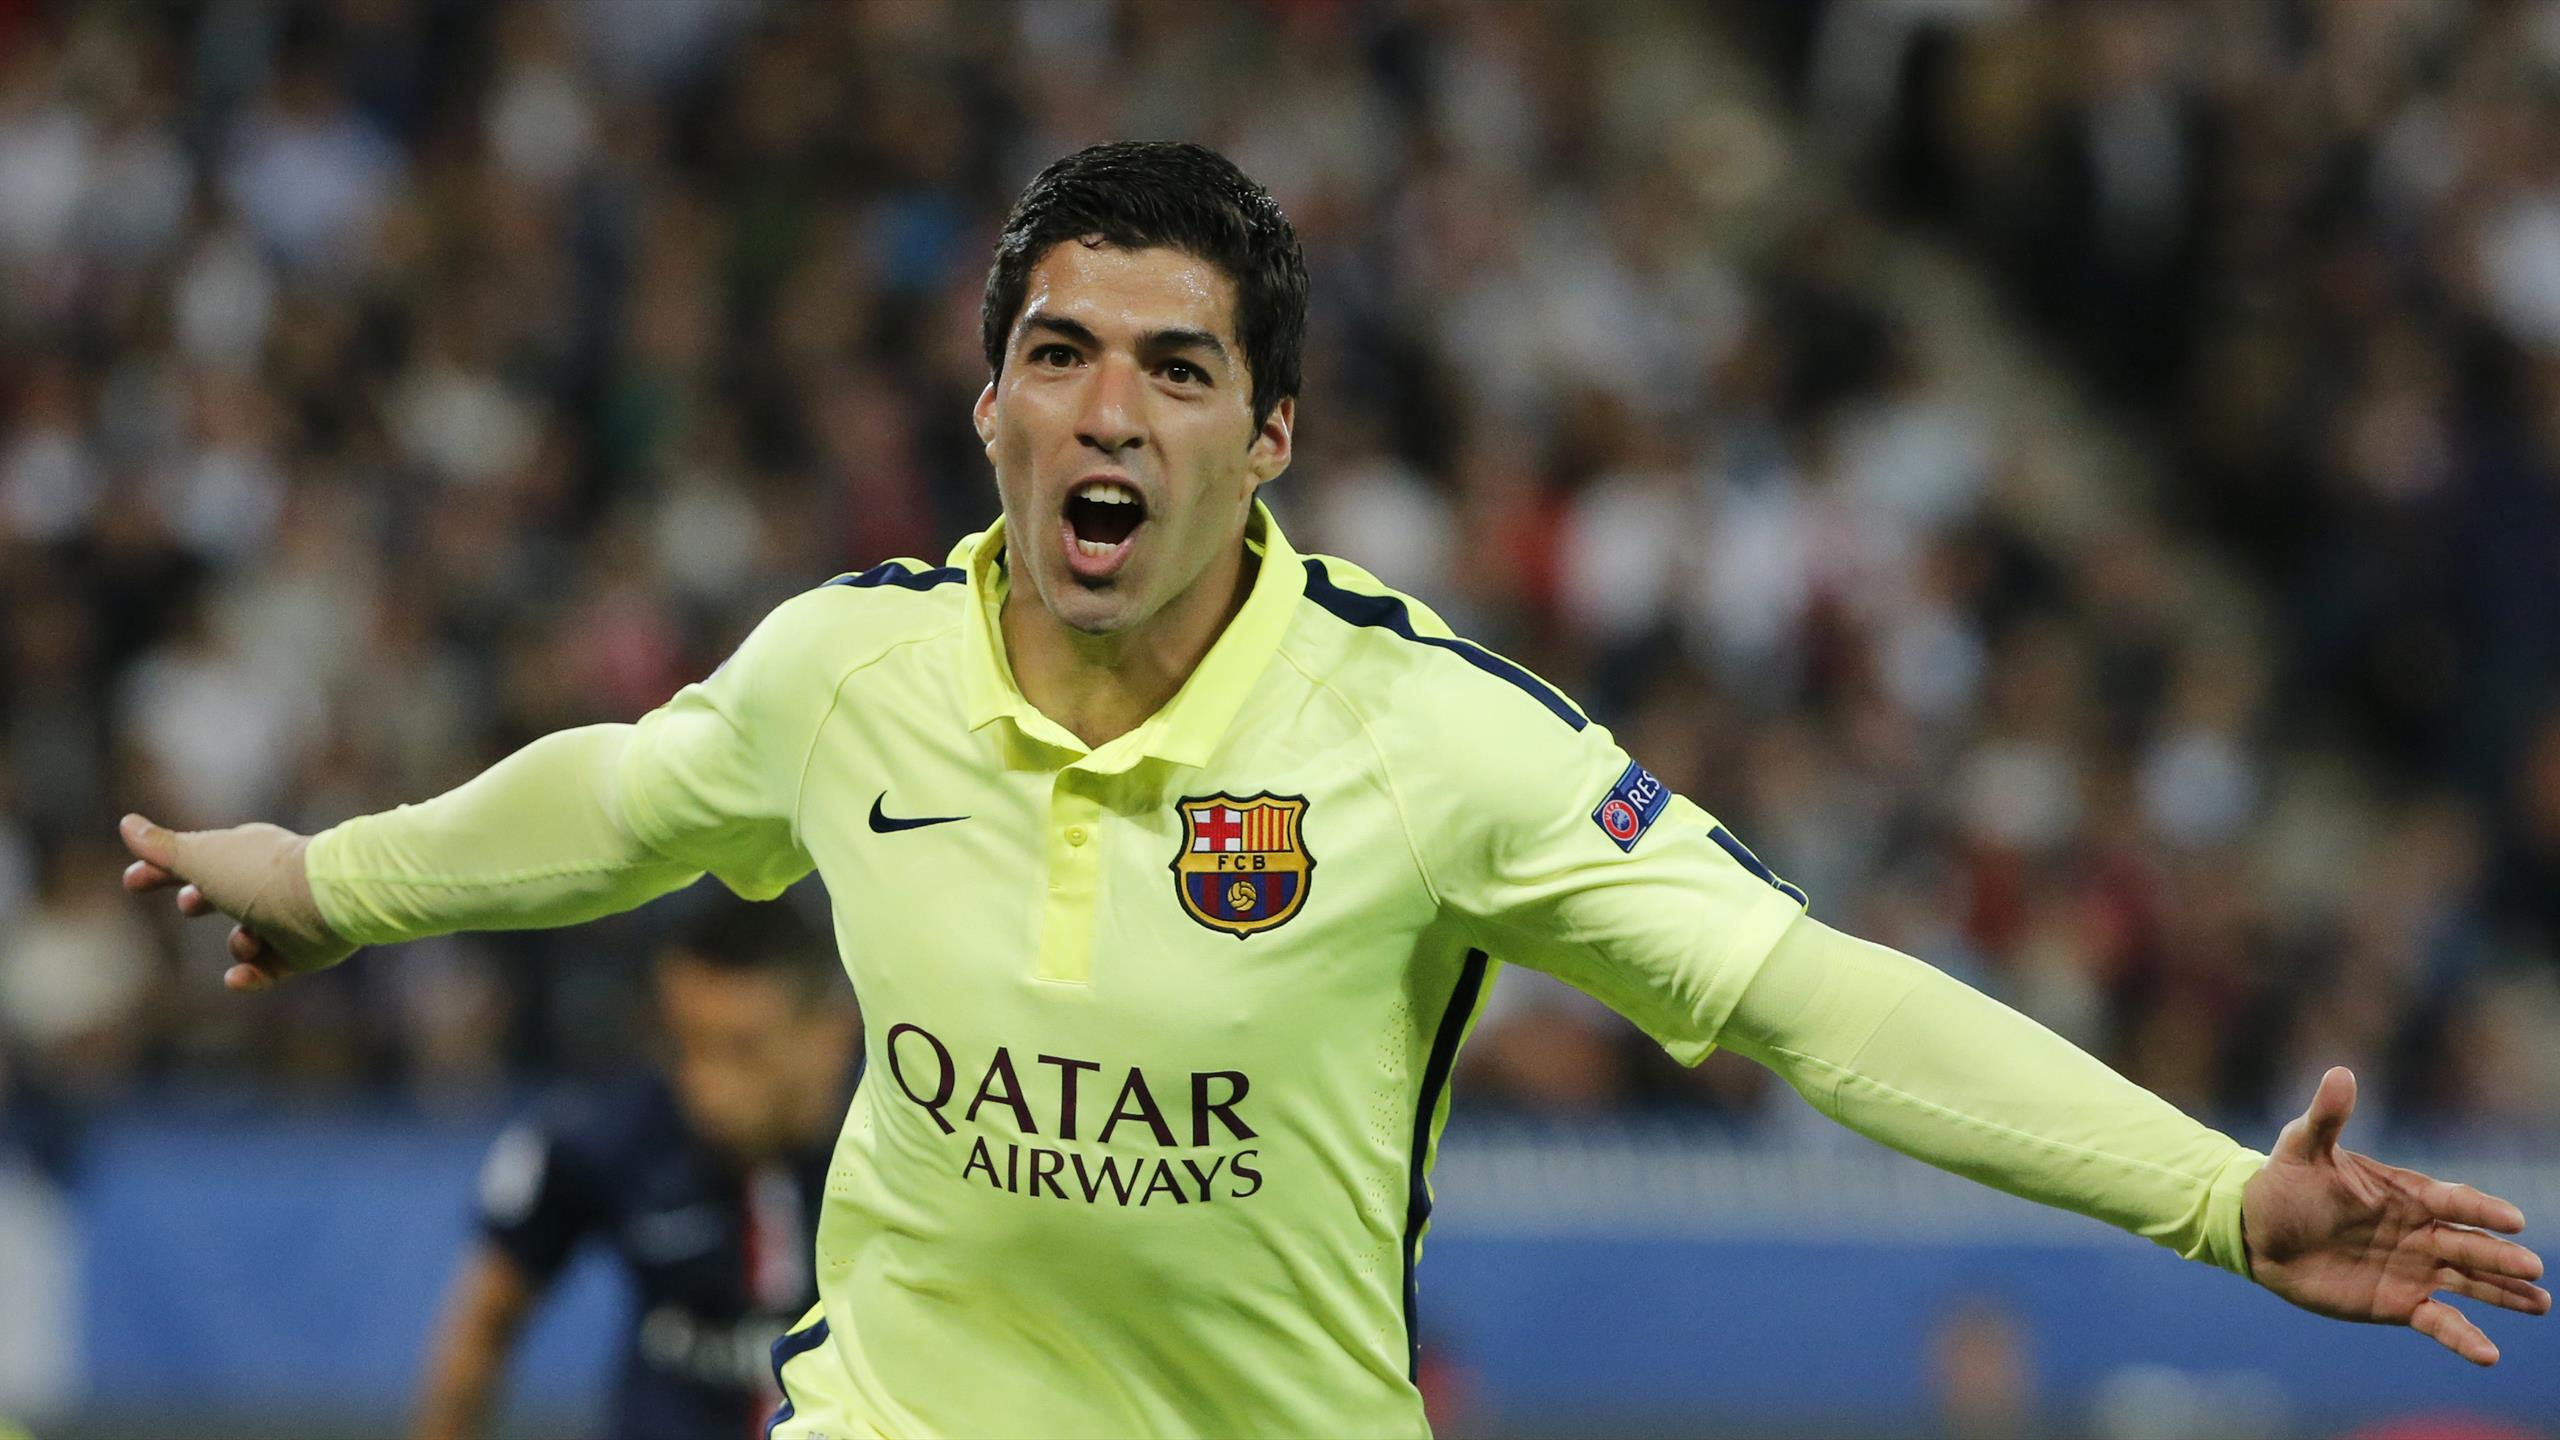 Luis Suarez scored twice in a 3-1 win at Paris Saint-Germain.